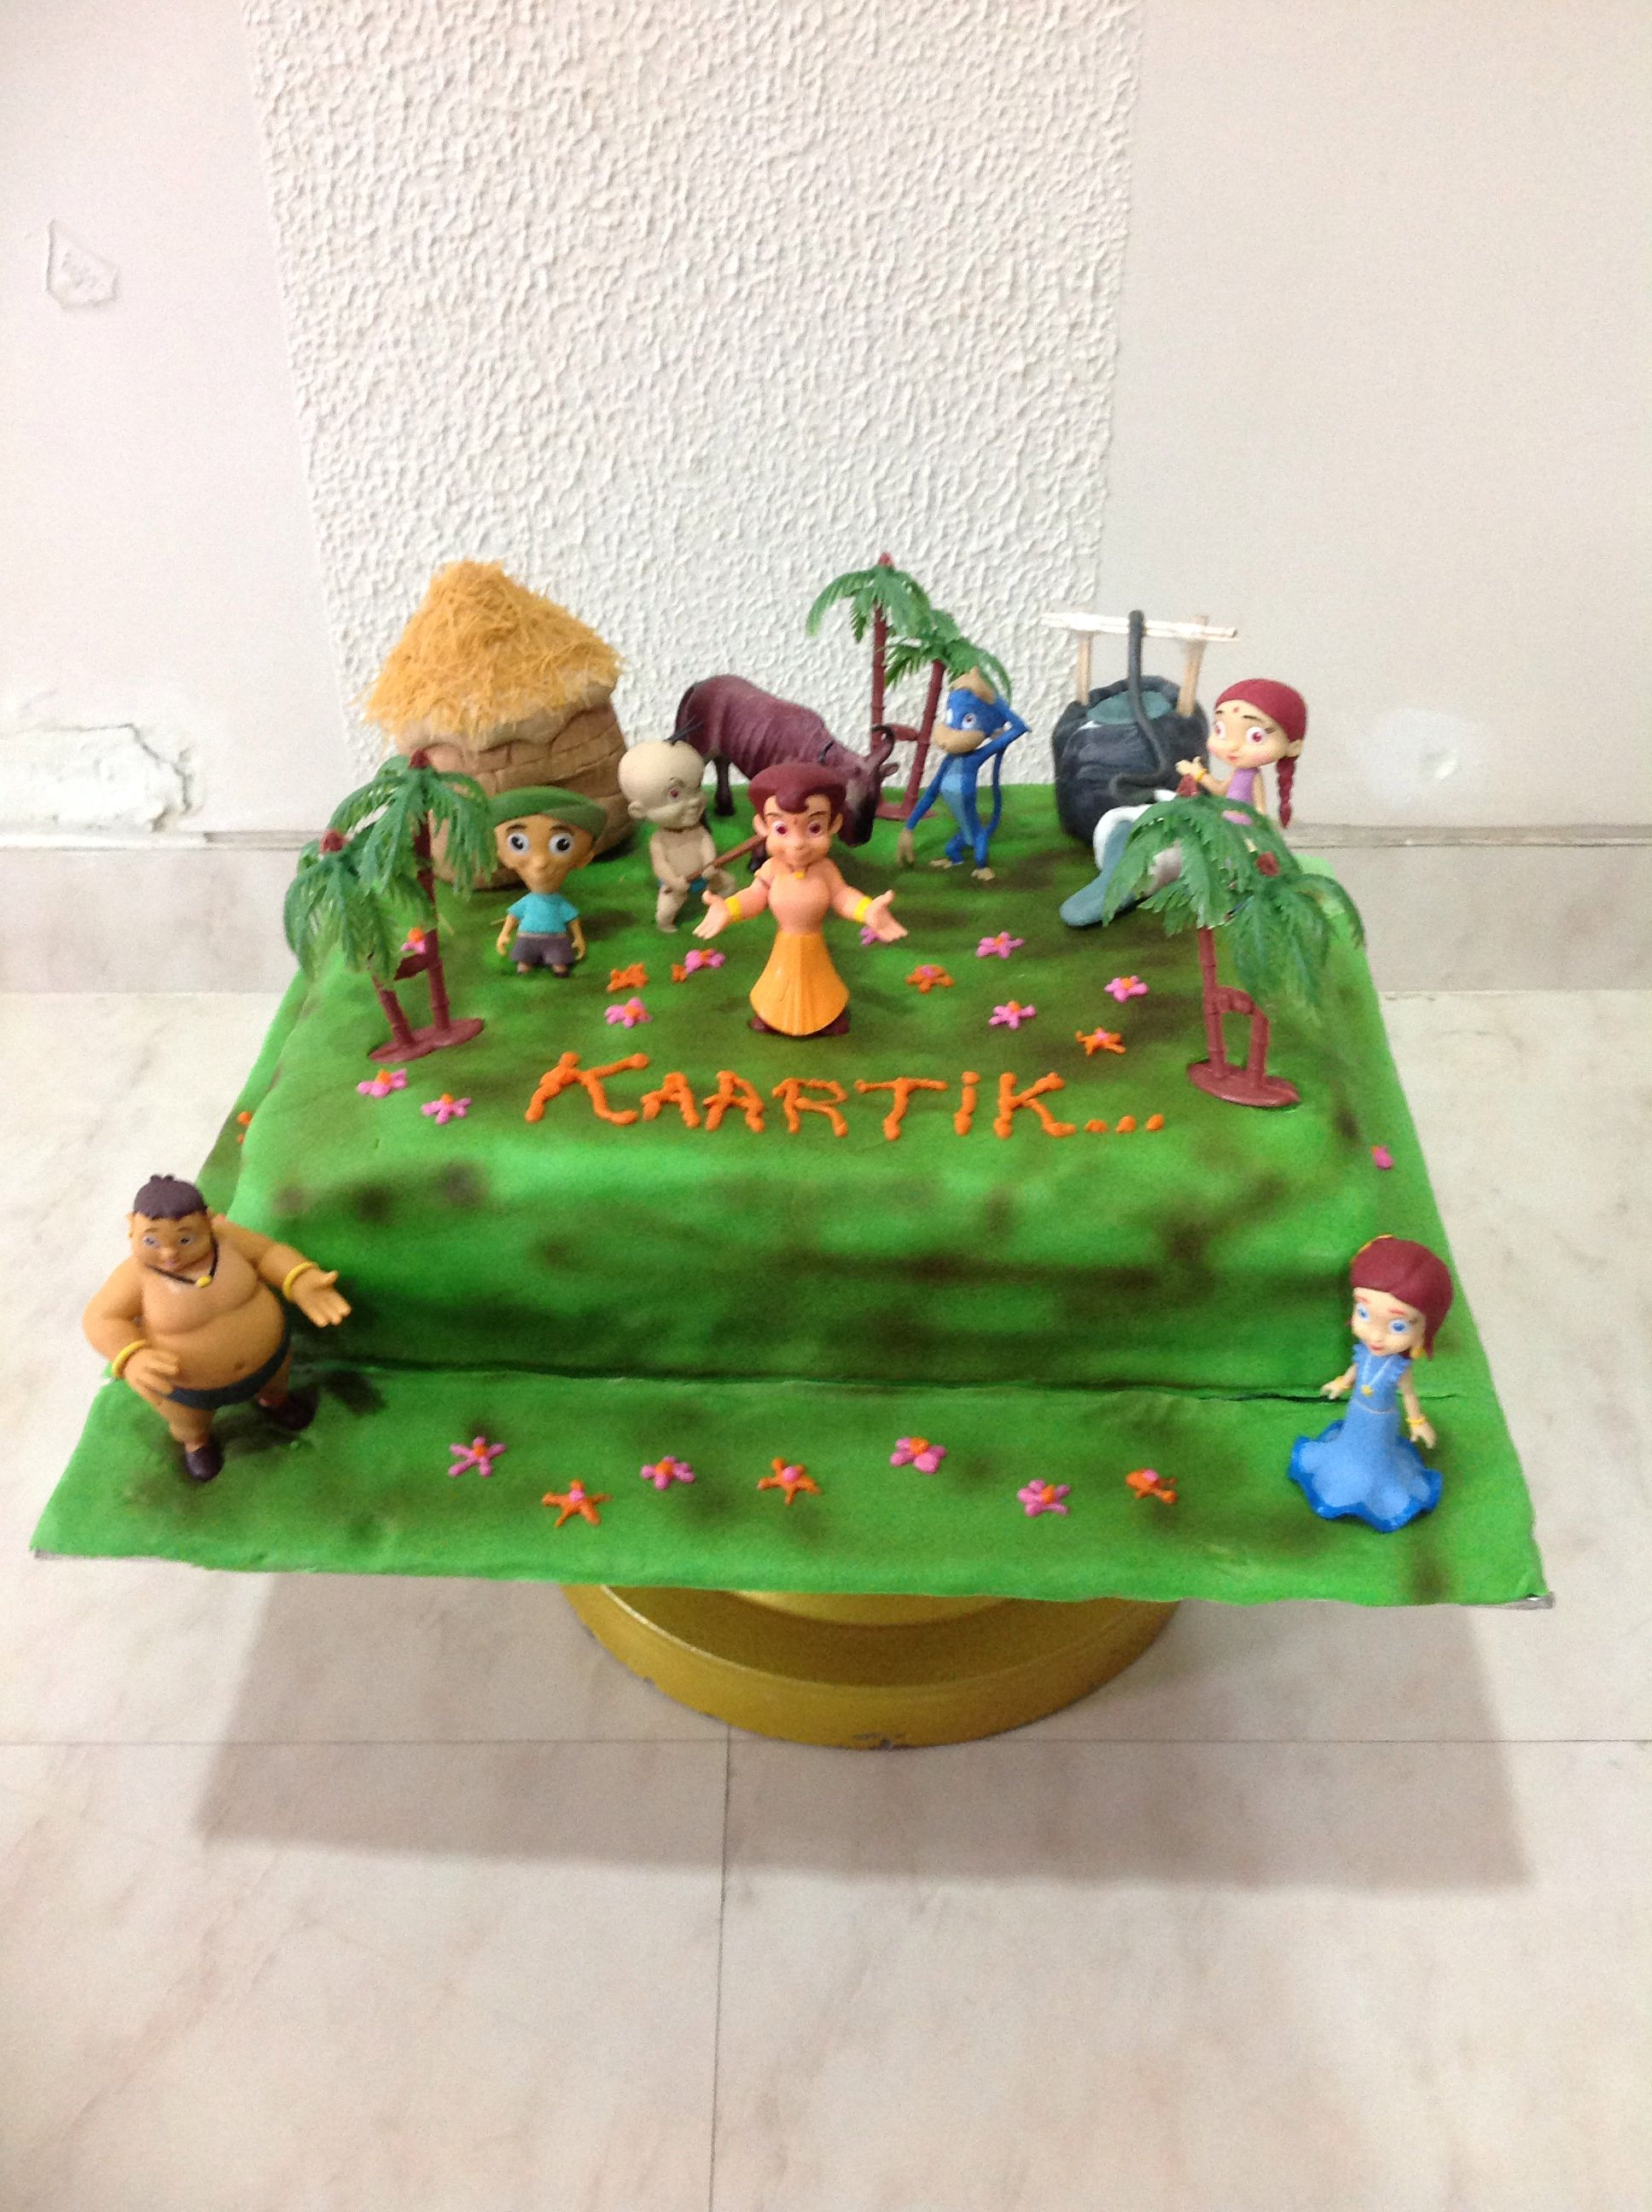 Chota Bheem themed cake!!! Every1 from Dholakpur to celebrate....